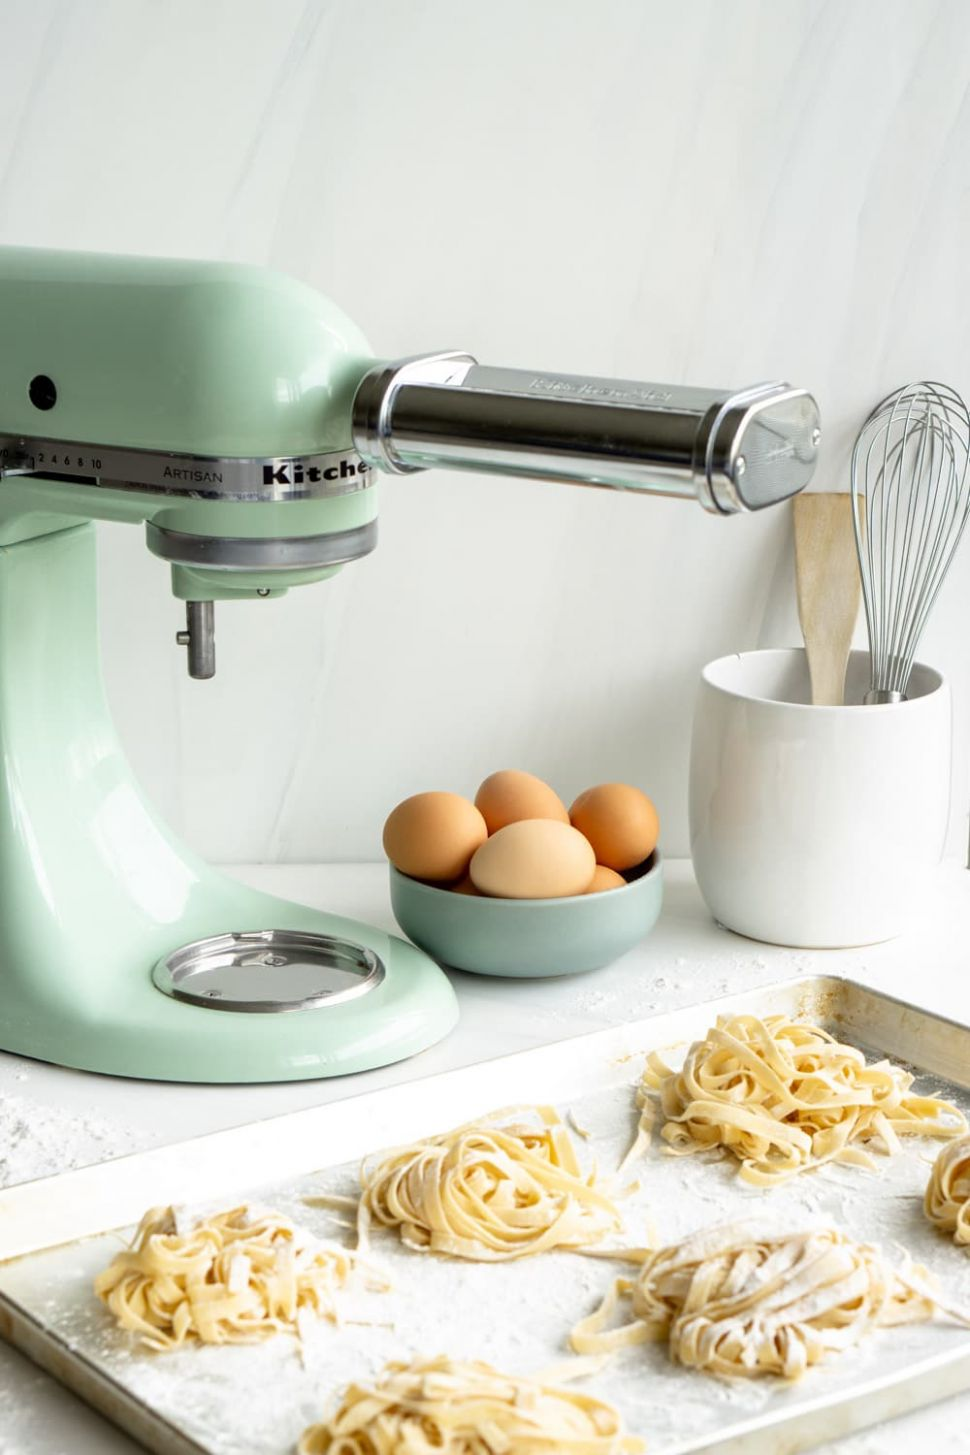 KitchenAid Pasta Recipe